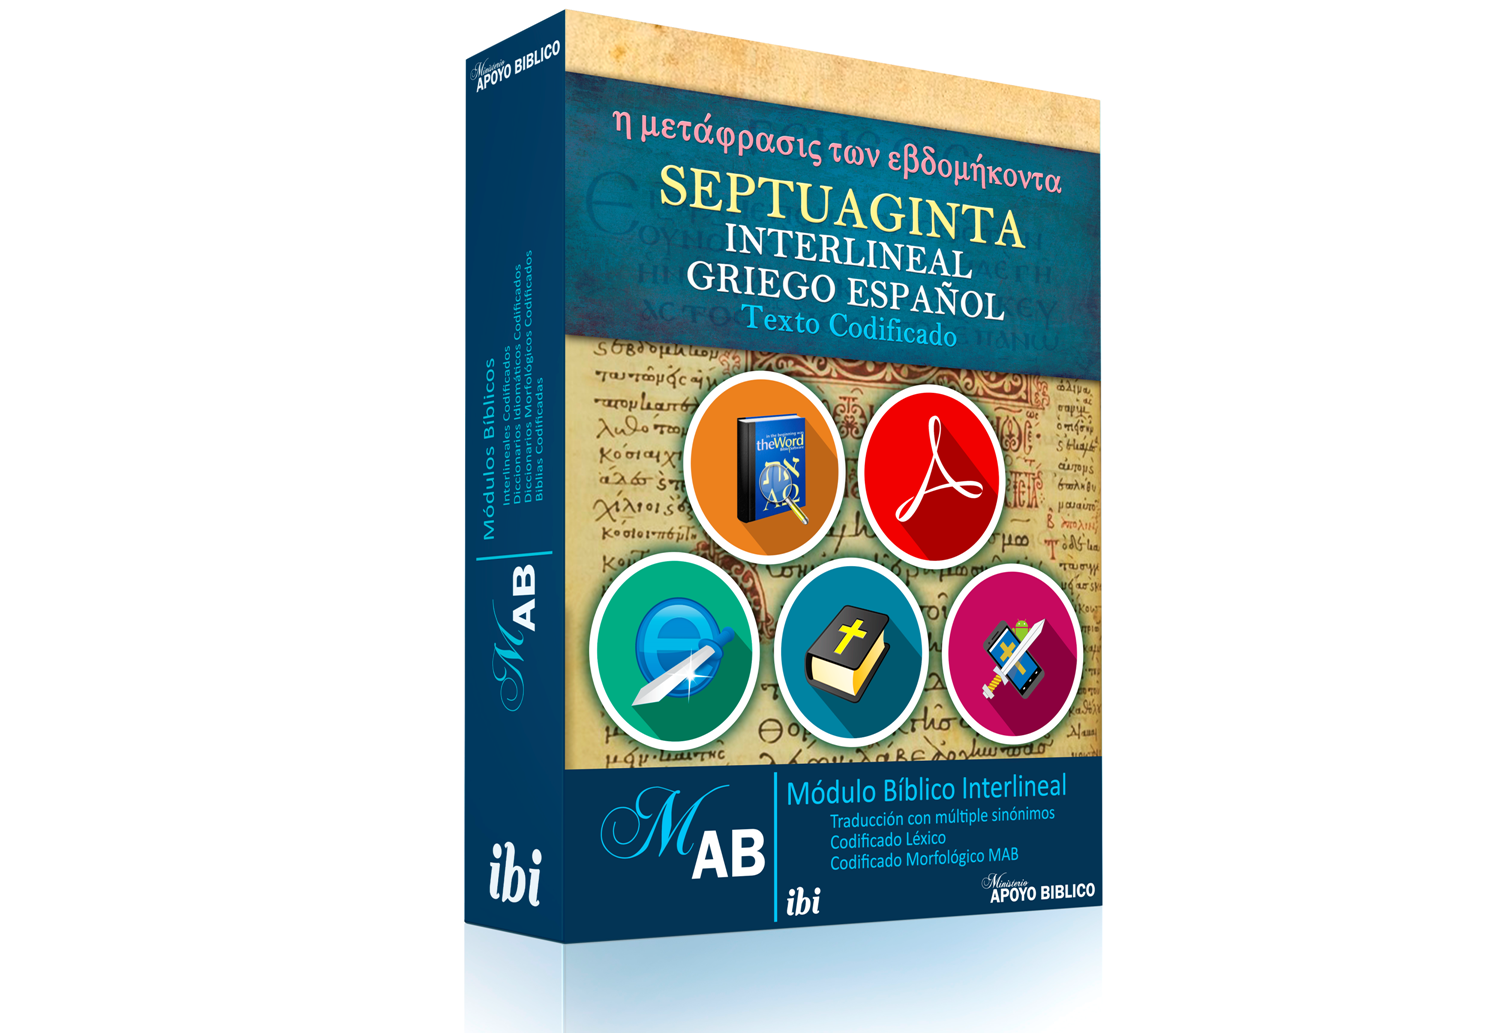 SEPTUAGINTA MODULO DIGITAL